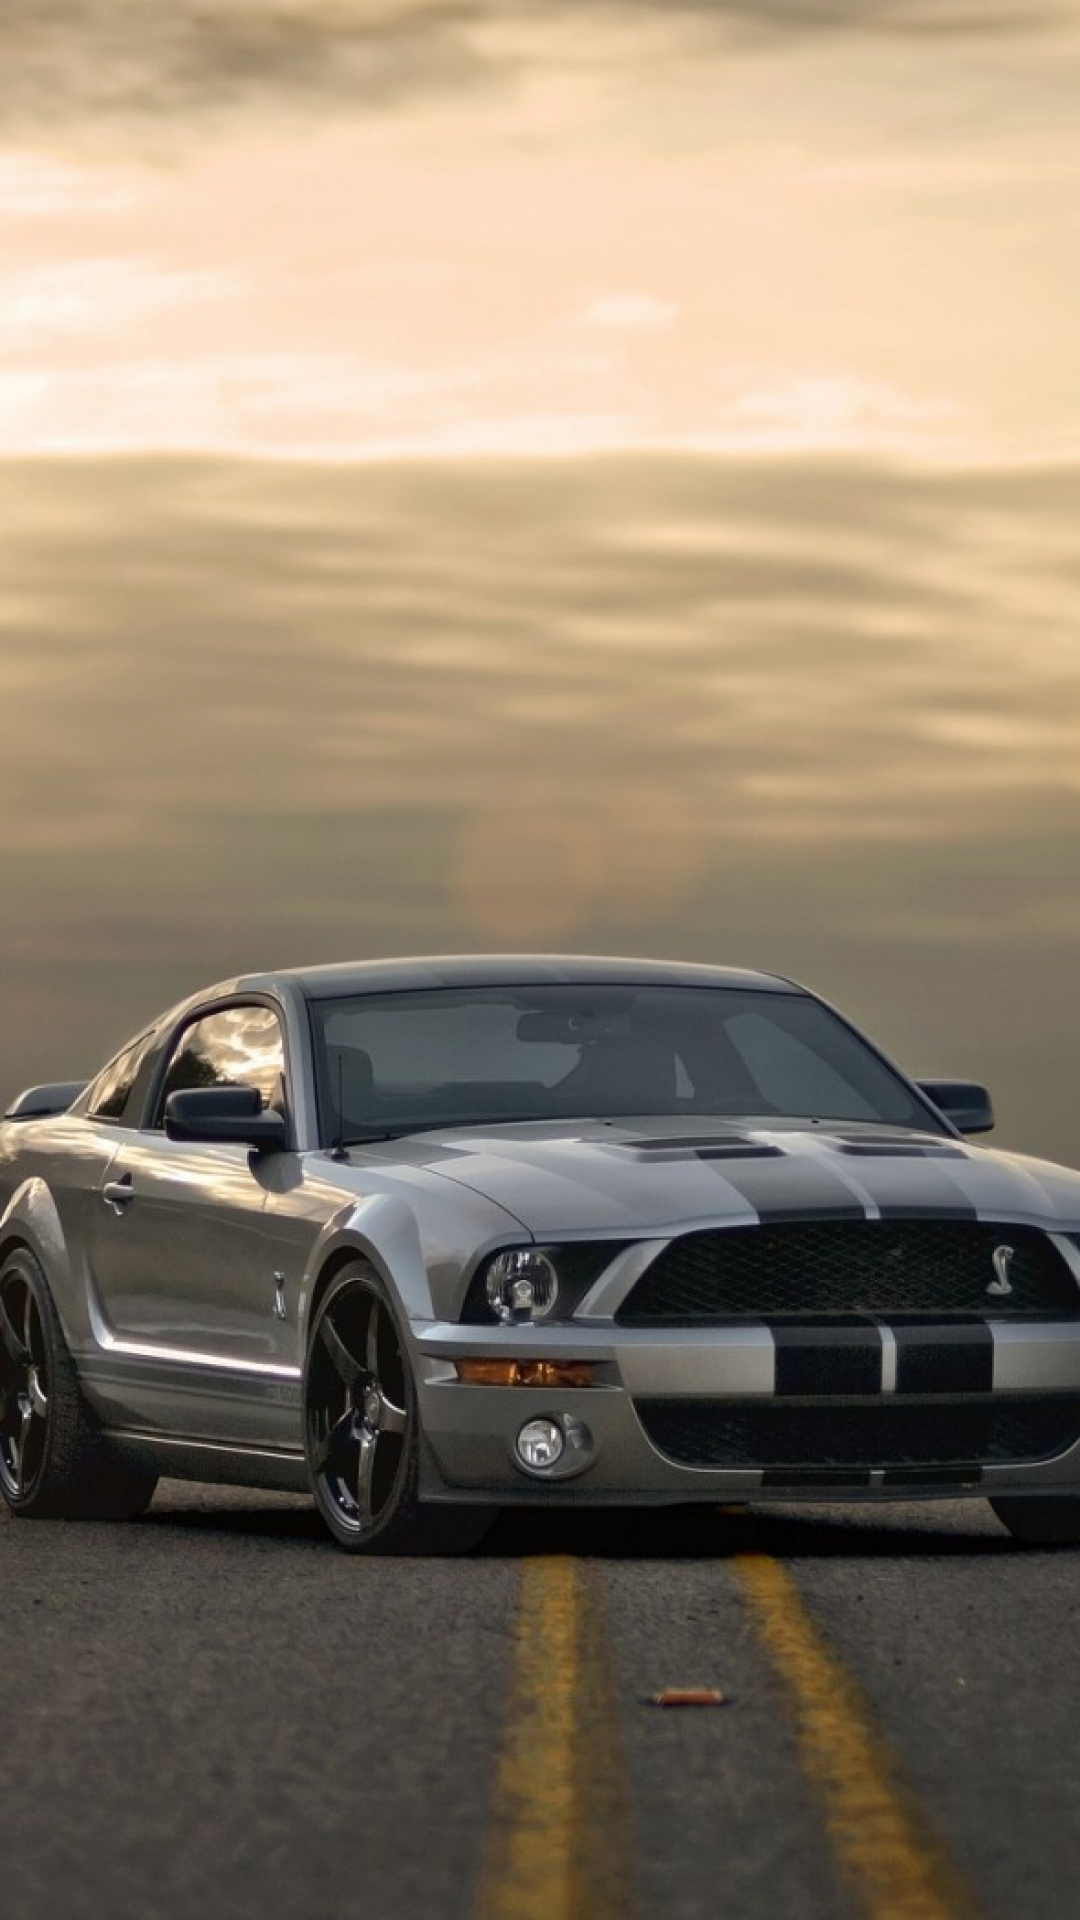 Ford Mustang Best Htc One Wallpapers Free And Easy To